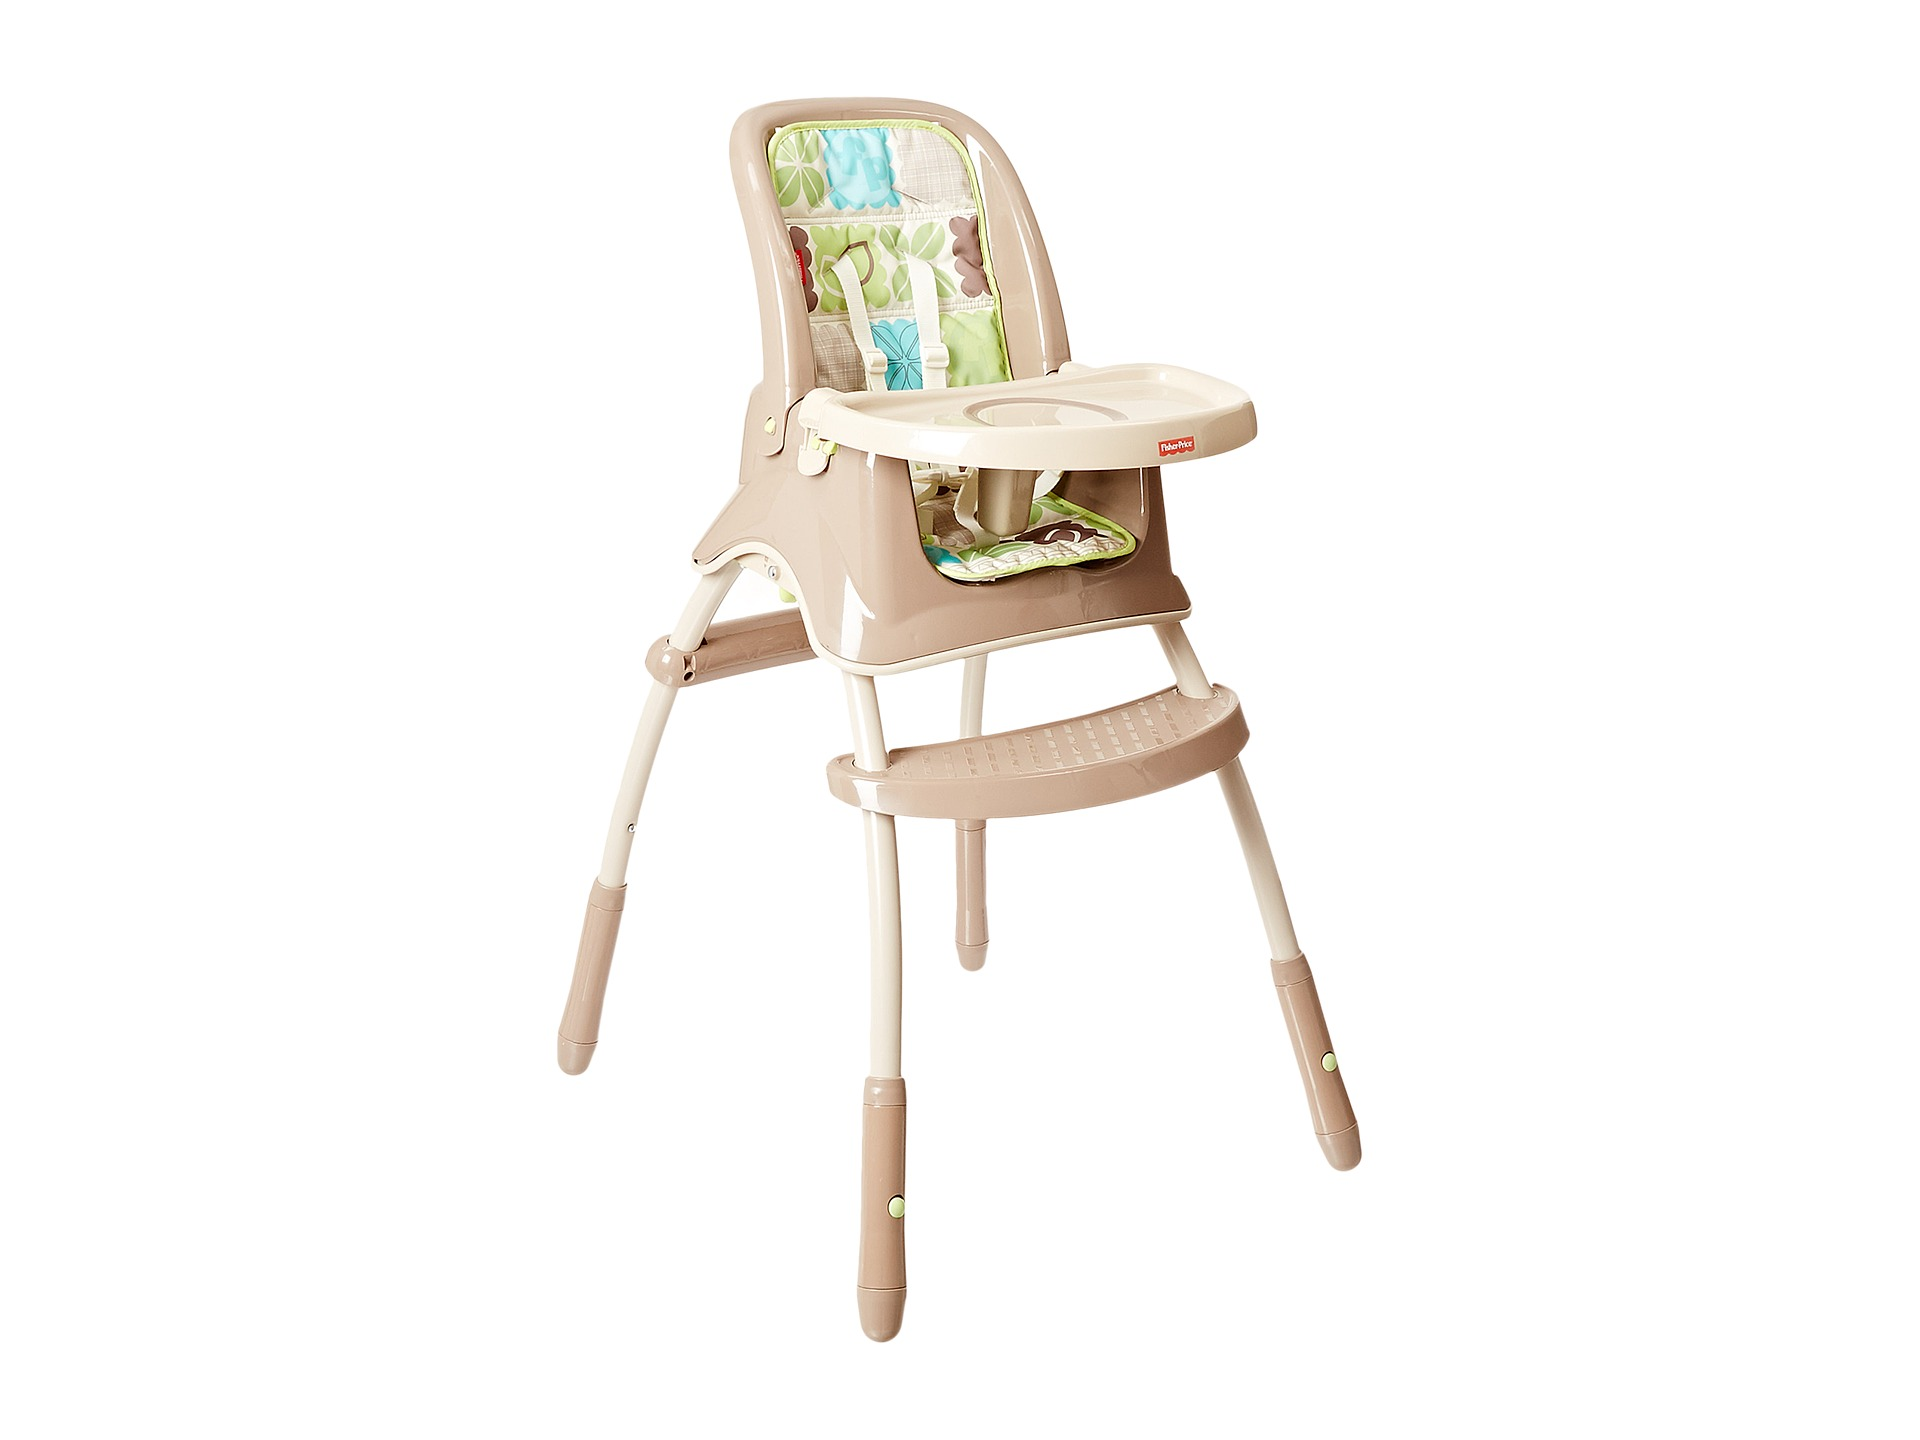 rainforest high chair beach umbrellas and chairs fisher price friends grow with me